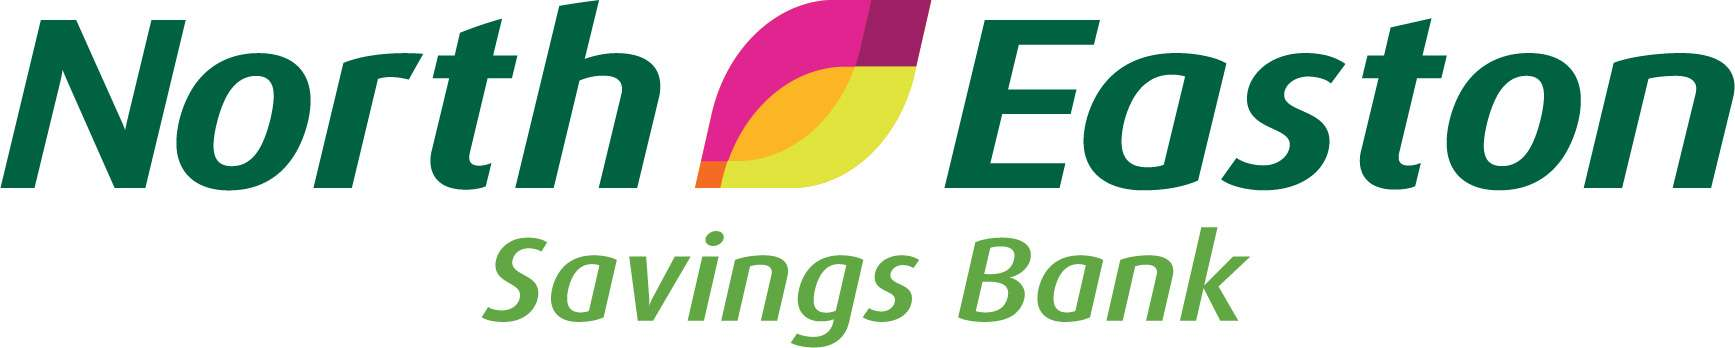 logo for North Easton Savings Bank